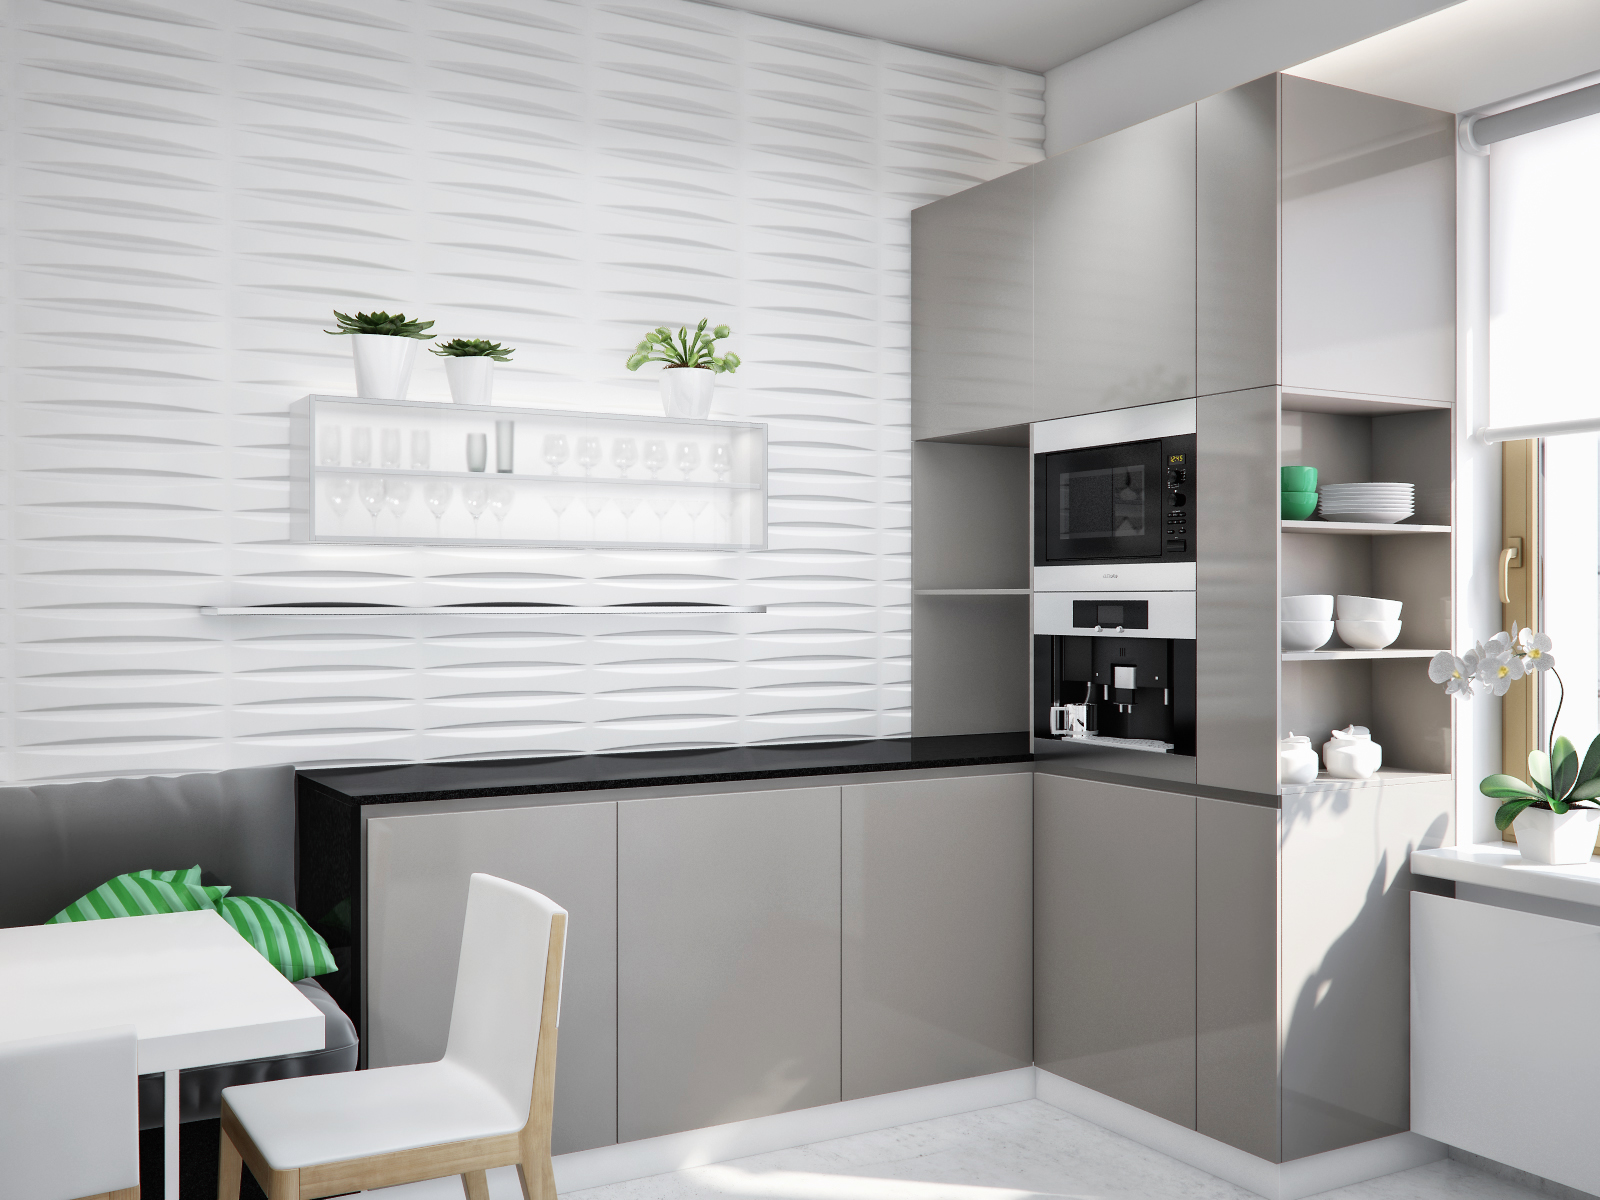 15 Modern Kitchen Backsplash Ideas Which Can Make Your  : Azovskiy Pahomova Architects from roohome.com size 1600 x 1200 jpeg 839kB